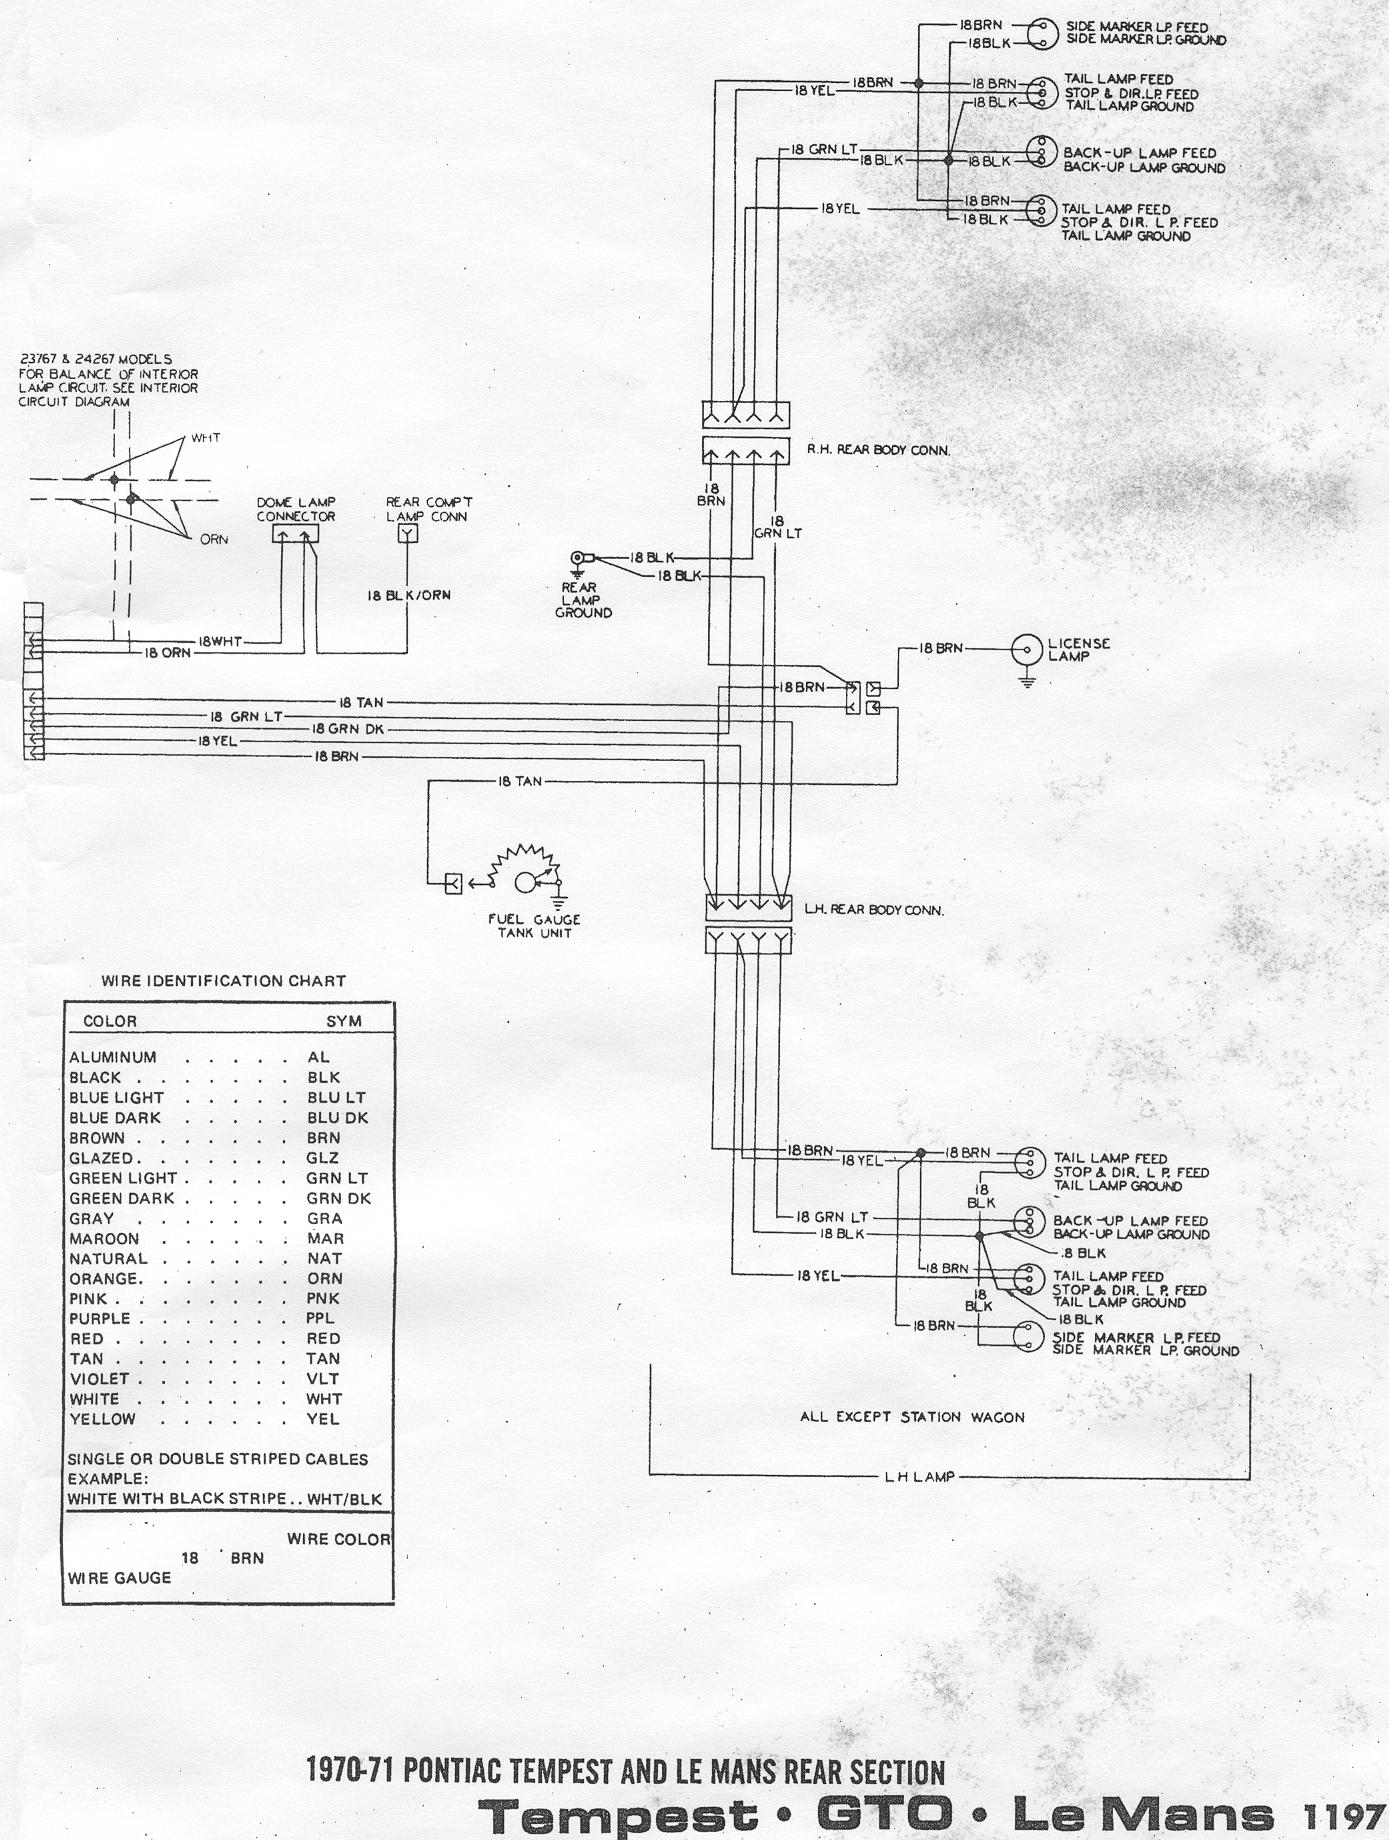 gto wiring diagram scans pontiac gto forum jpg views 63763 size click image for larger version 70 71 gto page2